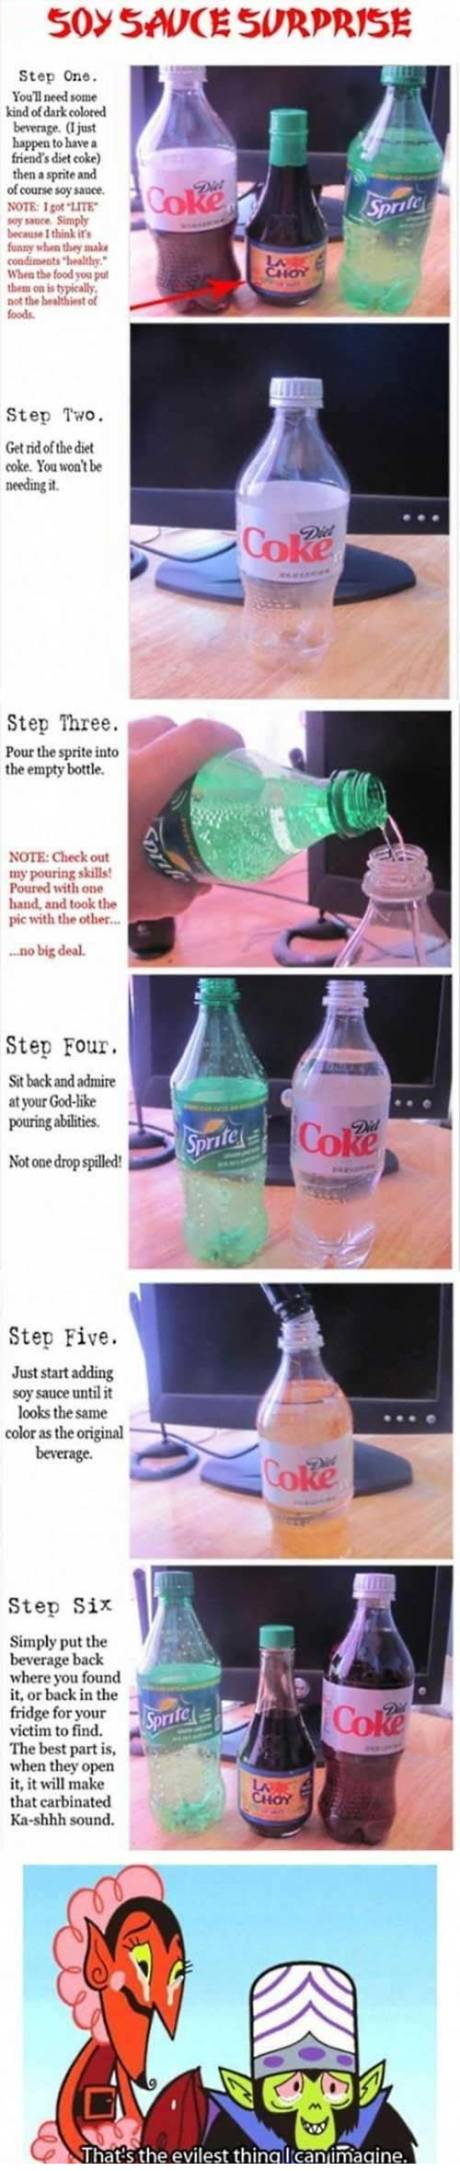 "April Fool's Prank: ""Soy Sauce Suprise""  Combine Sprite and Soy Sauce in a Diet Coke bottle"